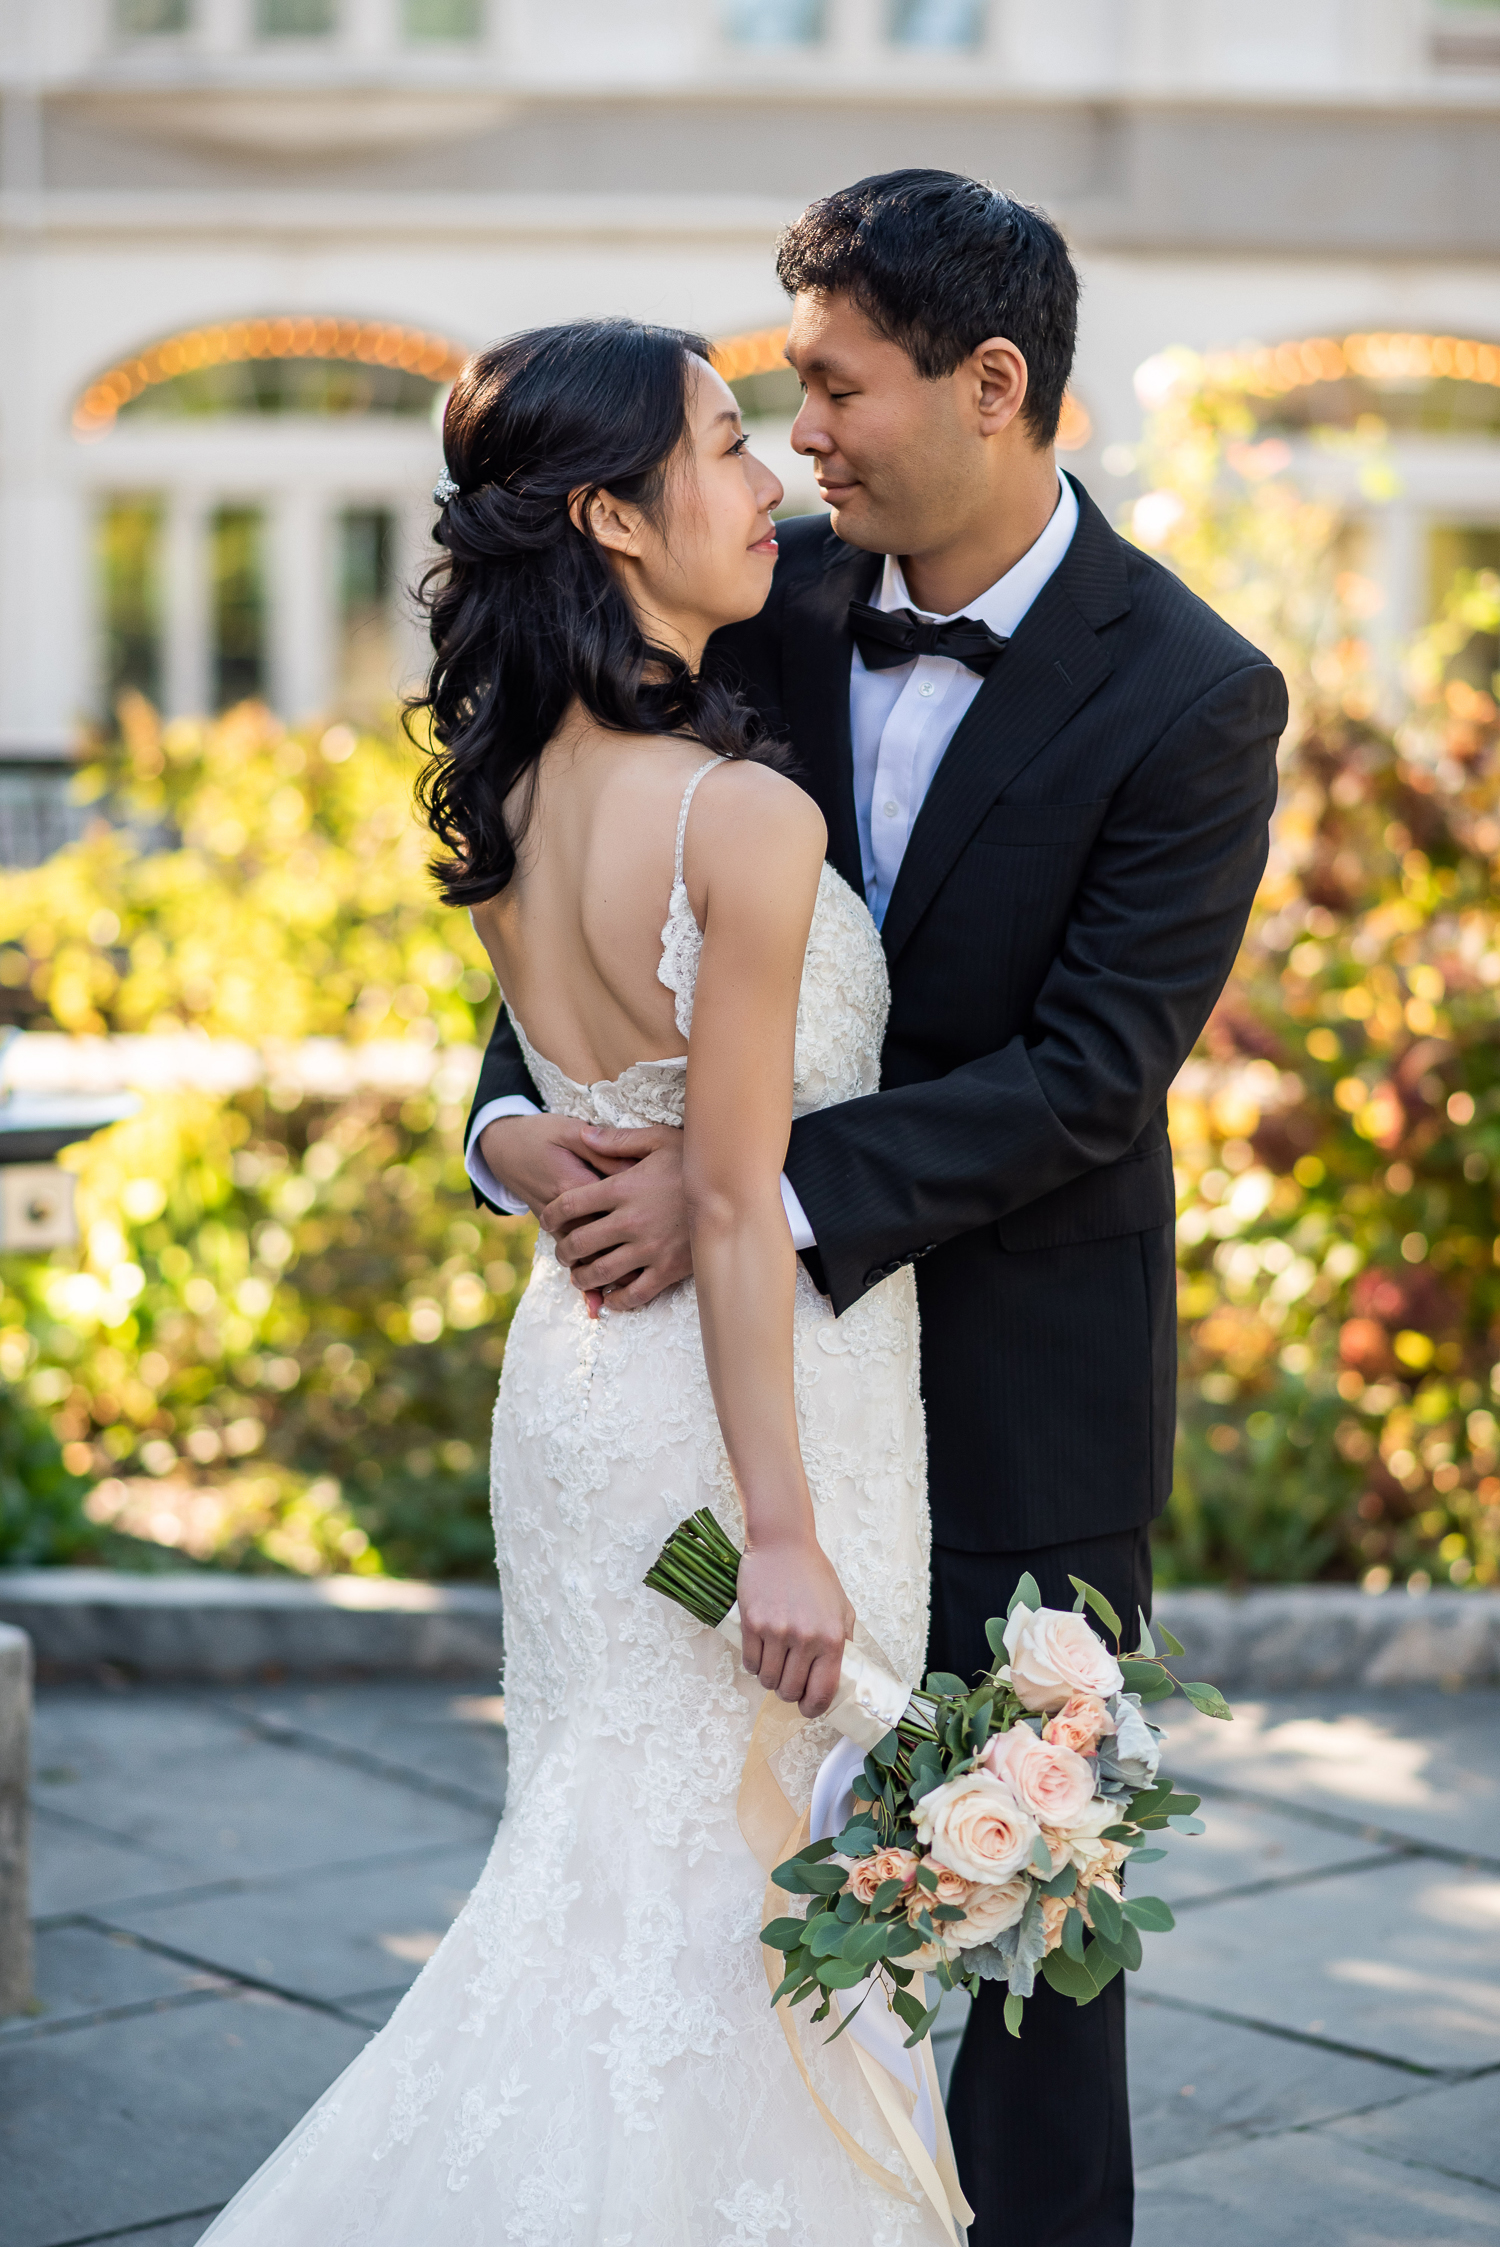 Emma_Cleary_Photo_and_Video_wedding_photos_0004